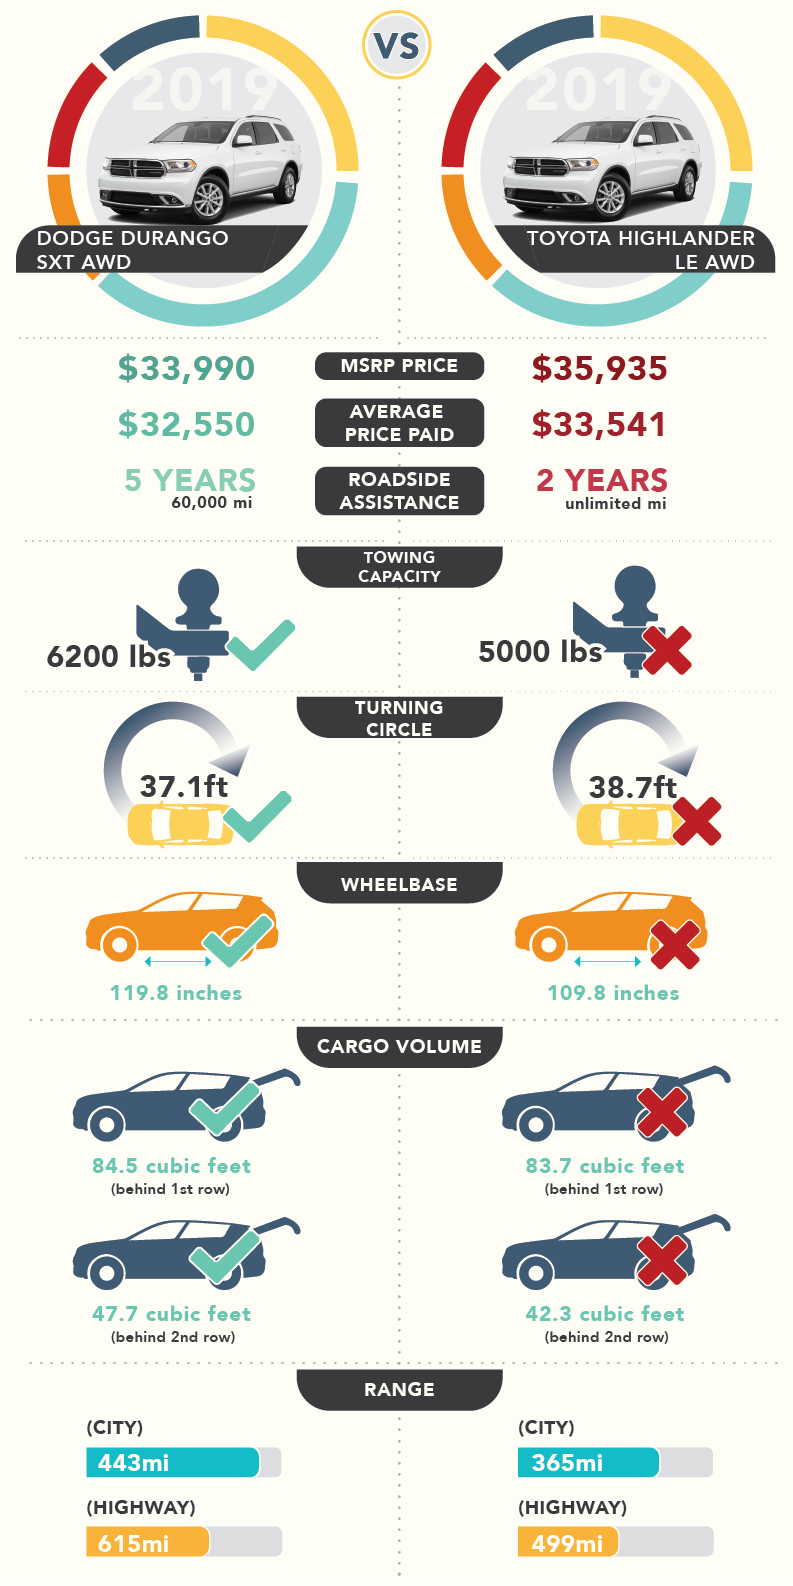 infographic comparing dodge durango to toyota highlander